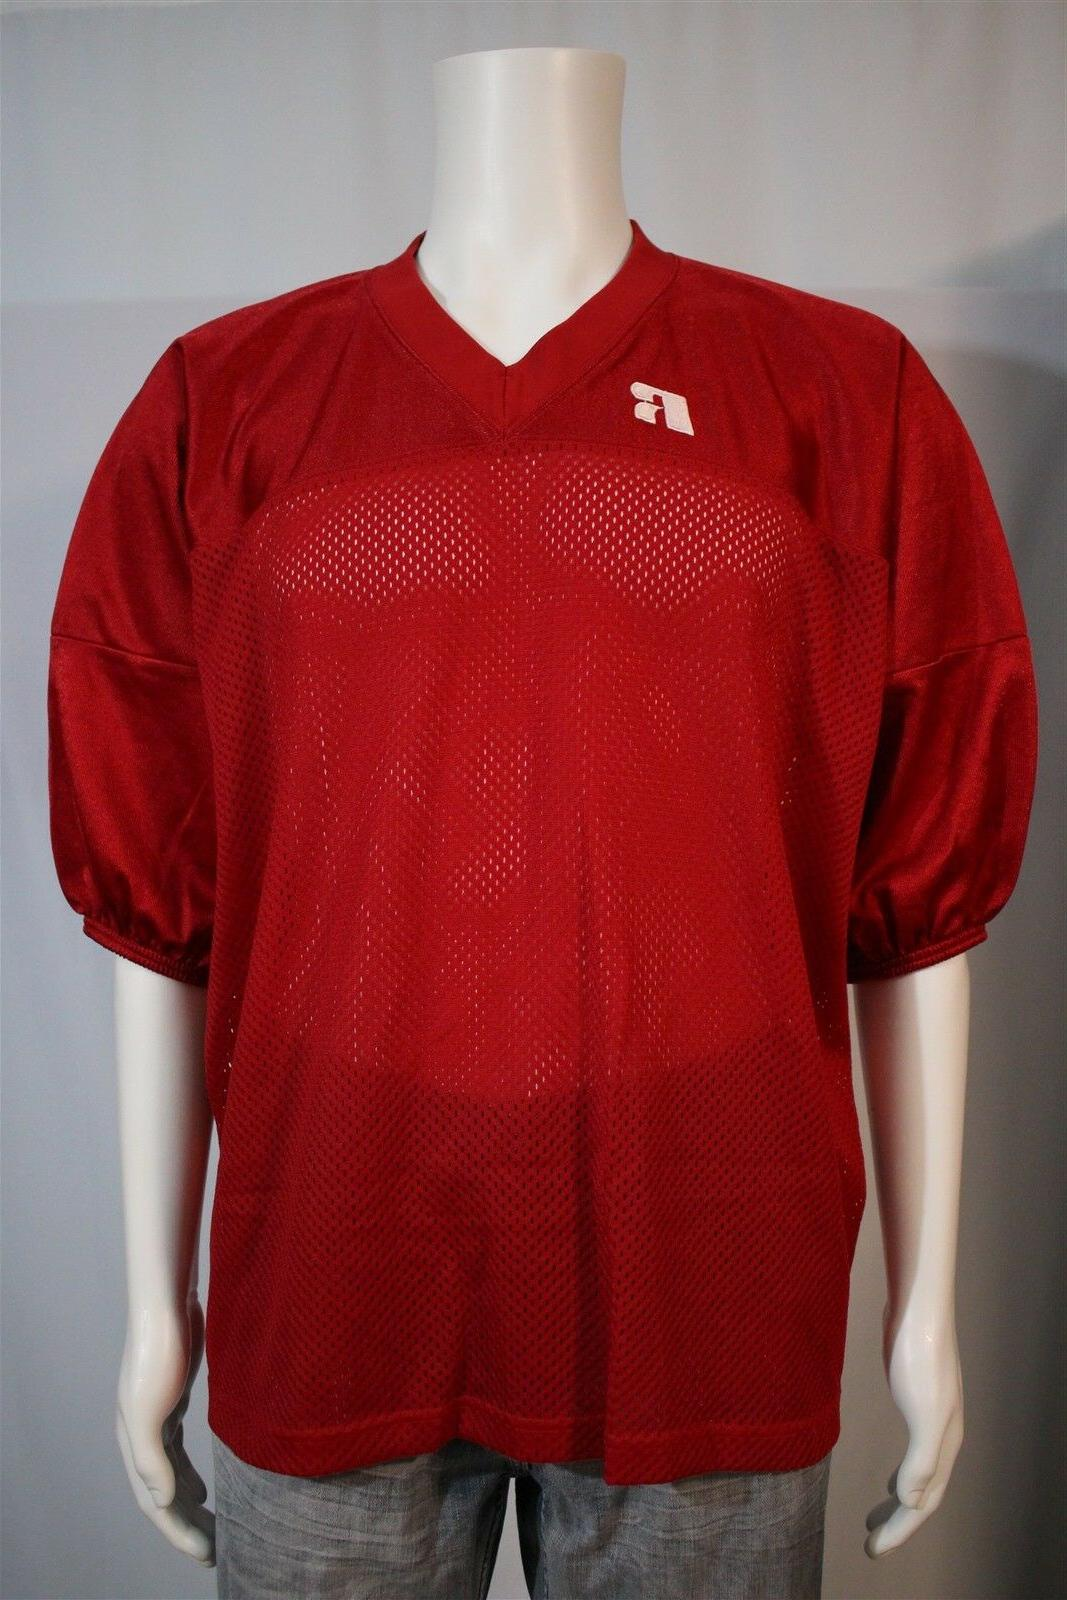 s men s adult 3xl red blank